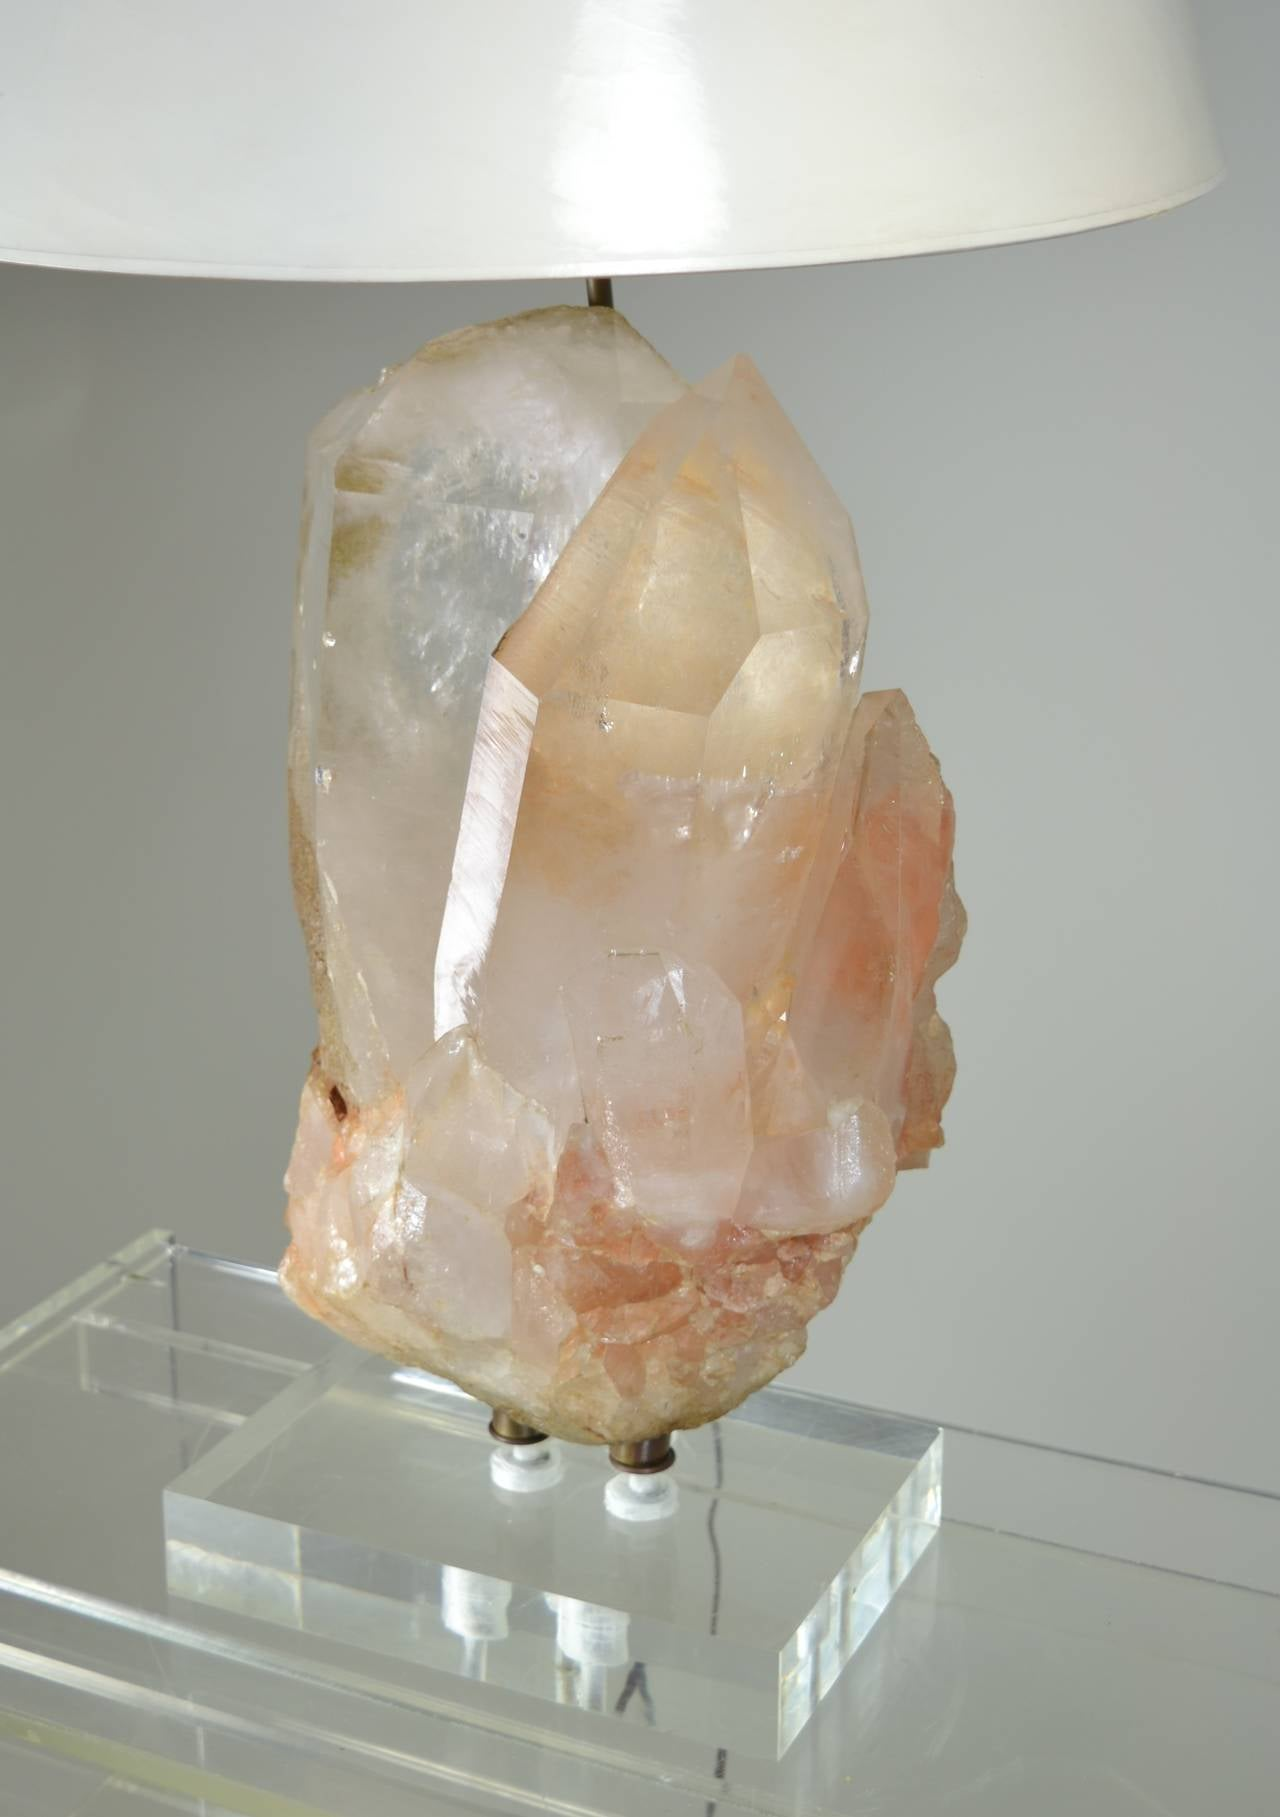 On A Heavy Lucite Base, This Is A Single, Large, Rosy Quartz Crystal